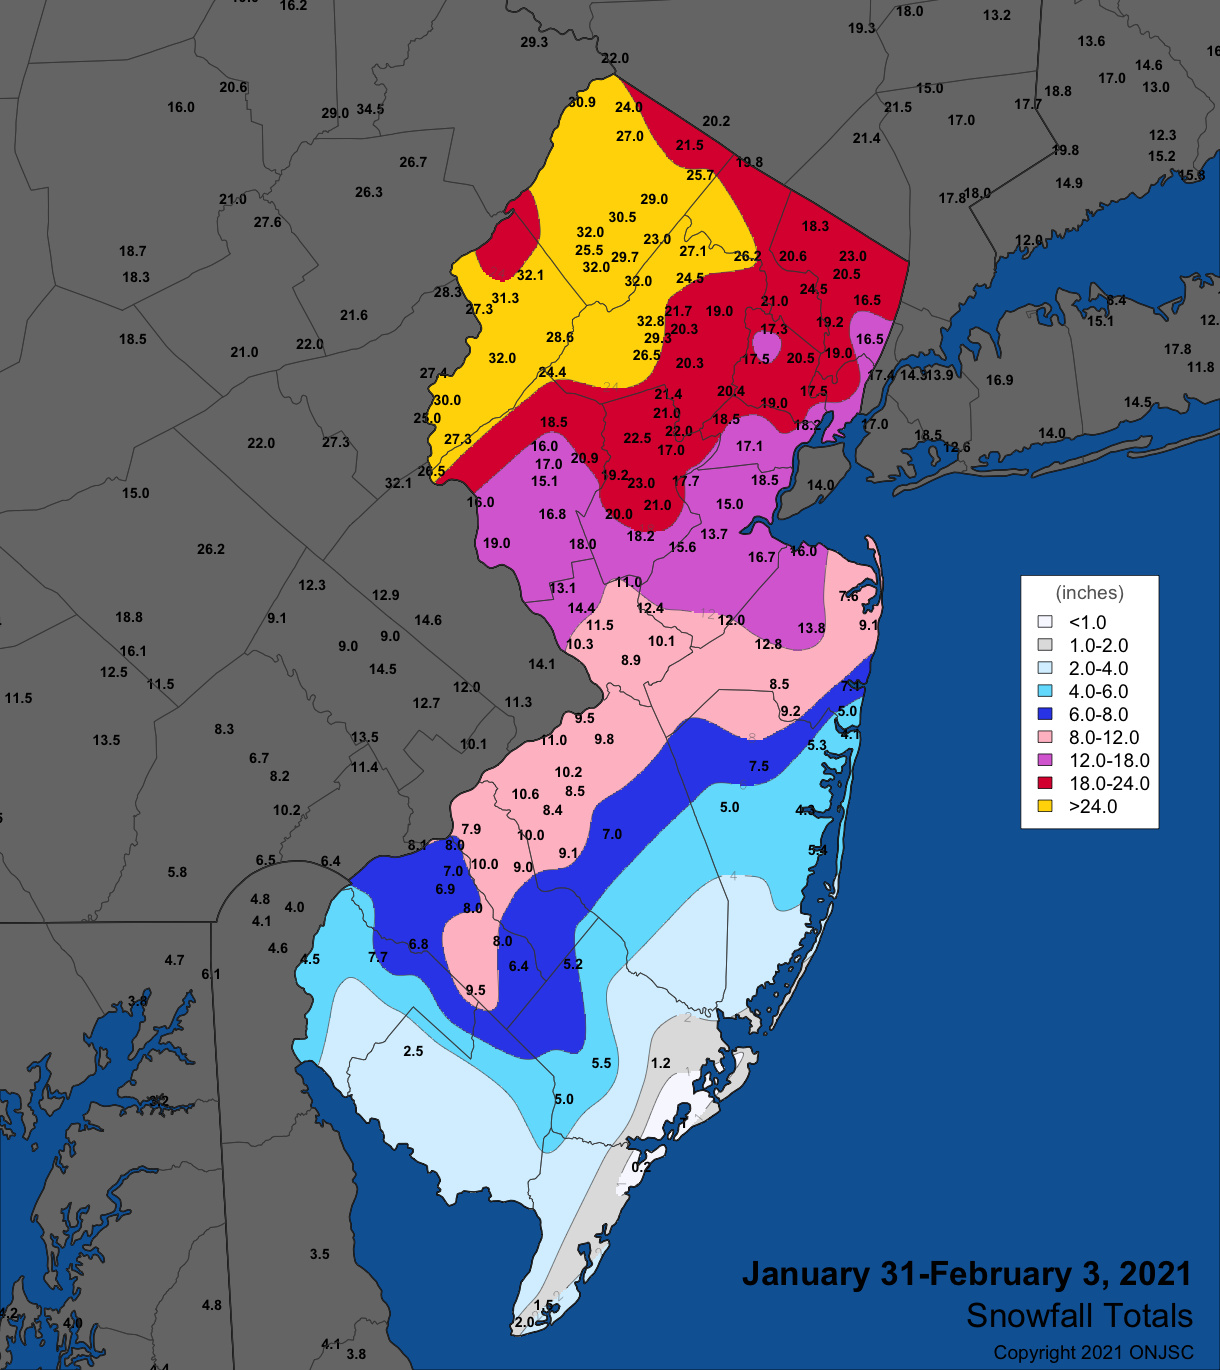 Snowfall map from January 31st-February 3rd winter storm